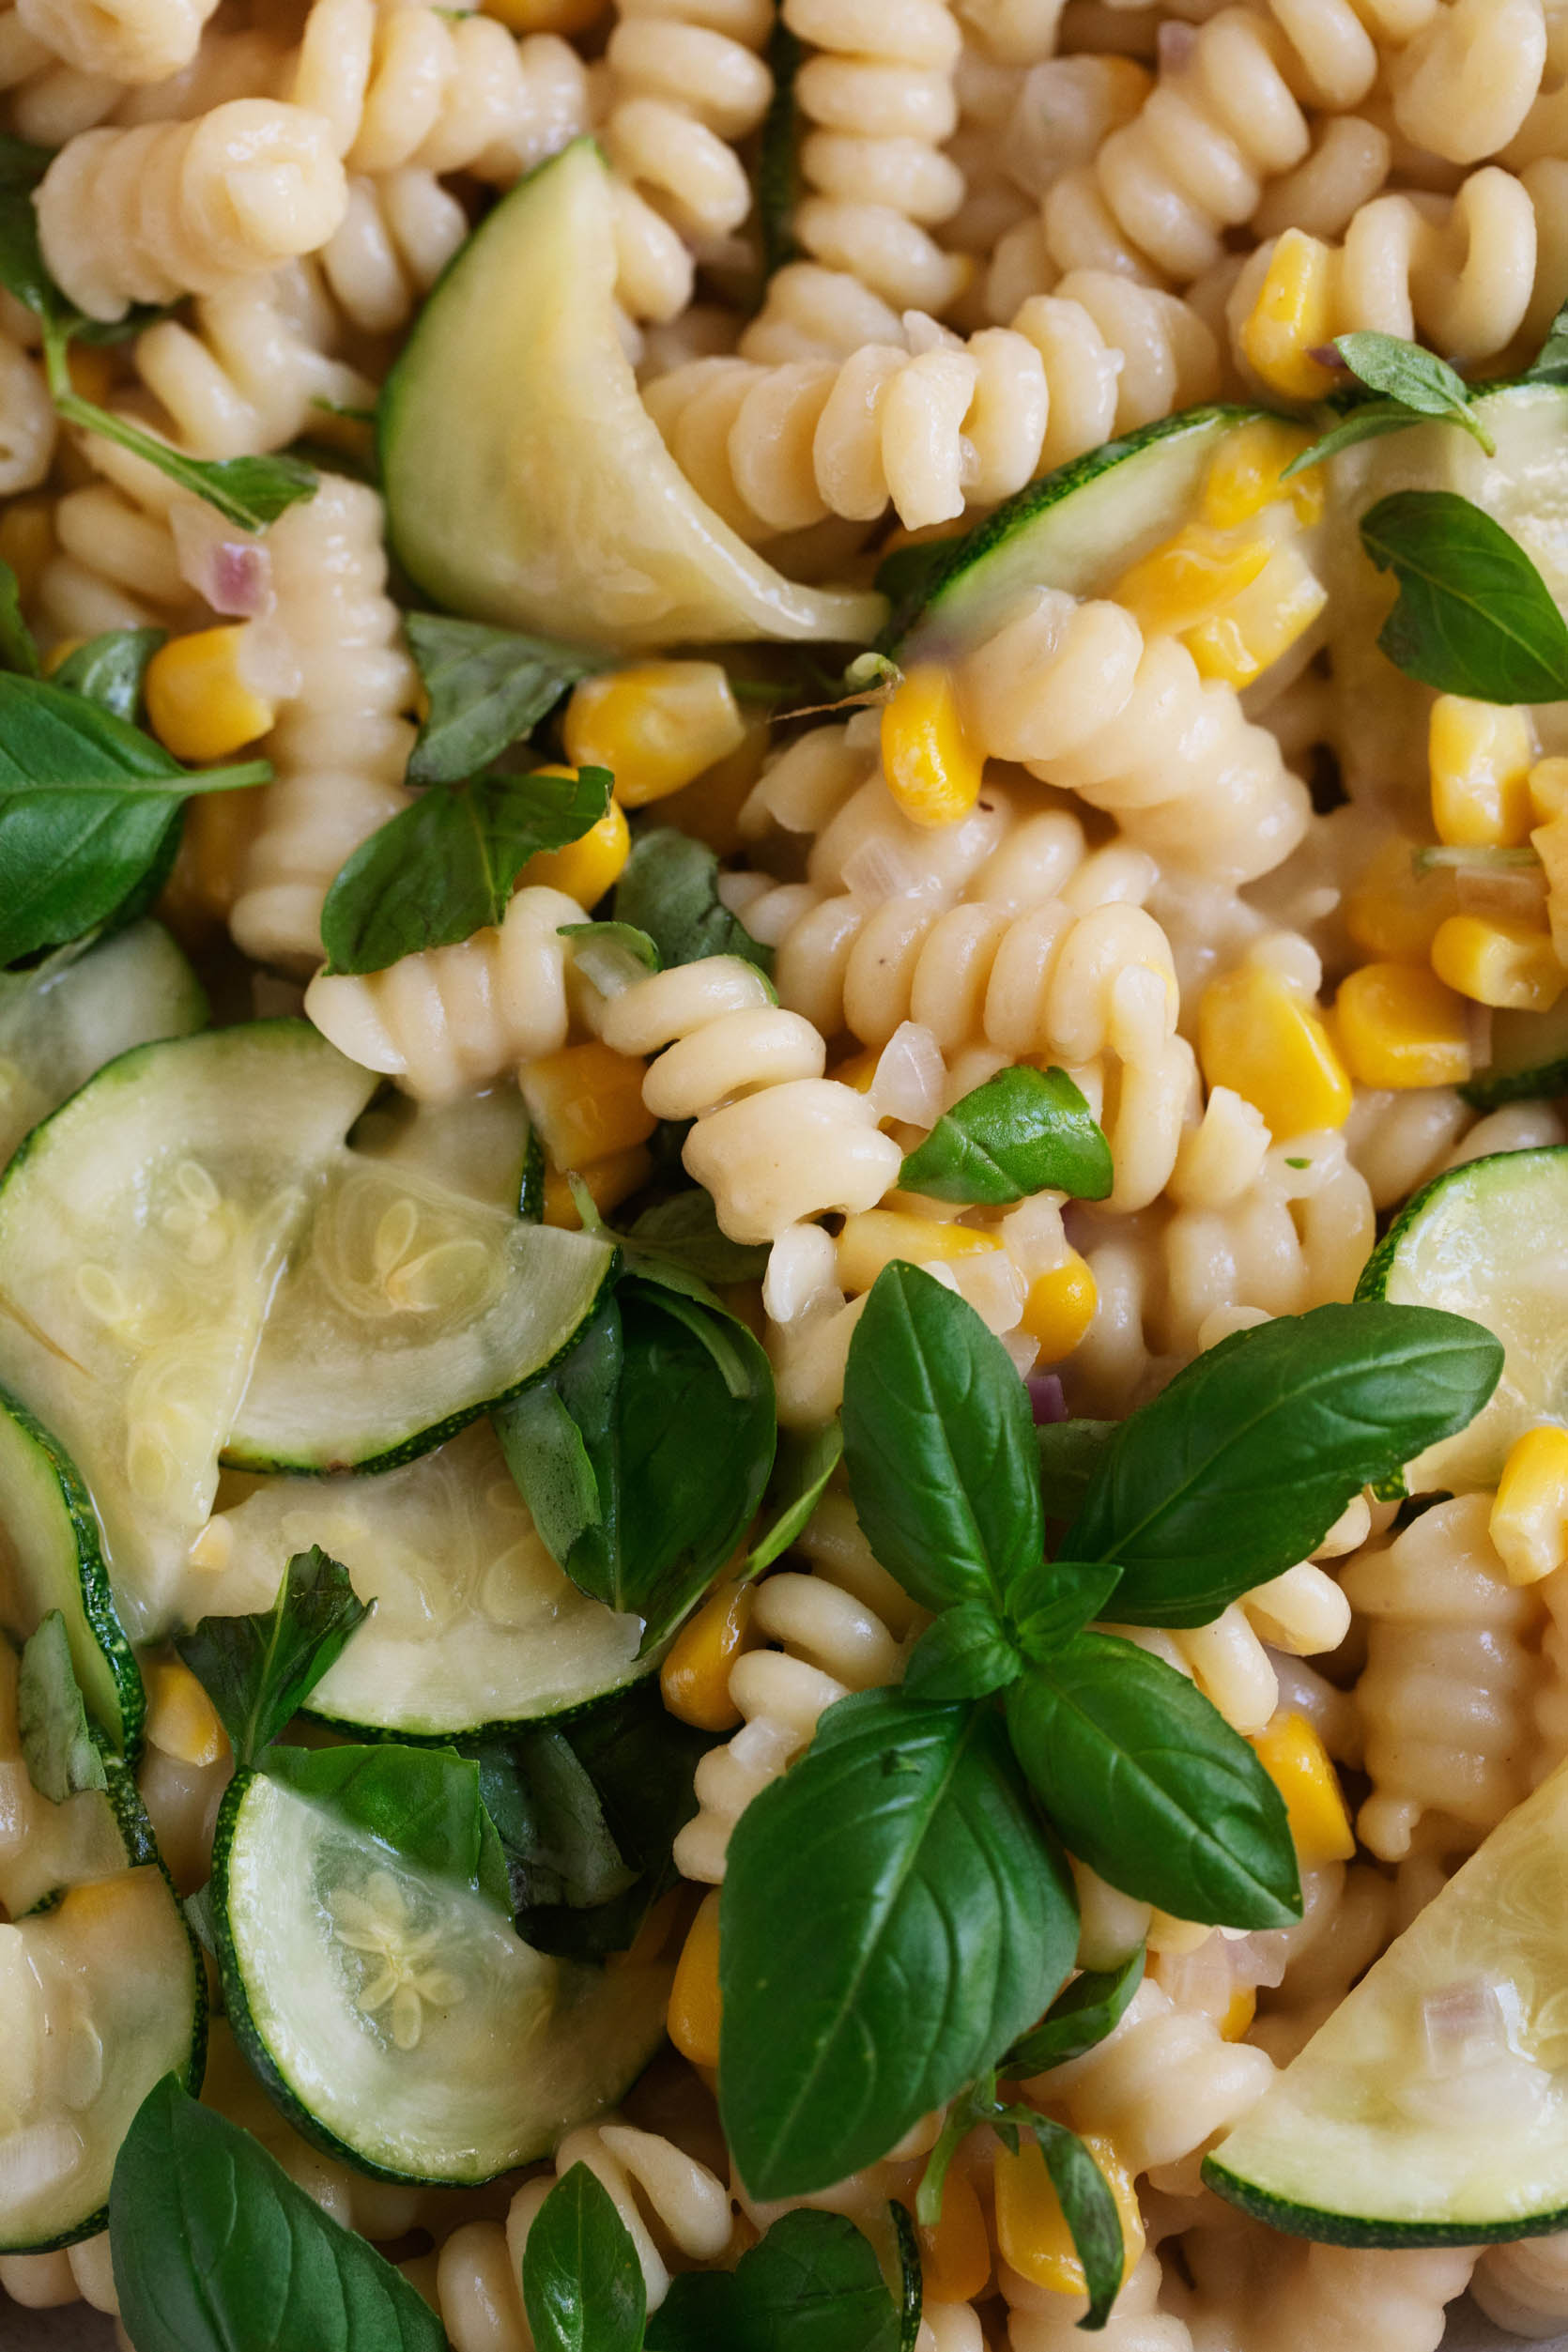 Zoomed in close up of a vegan pasta dish with zucchini, corn, and creamy sauce